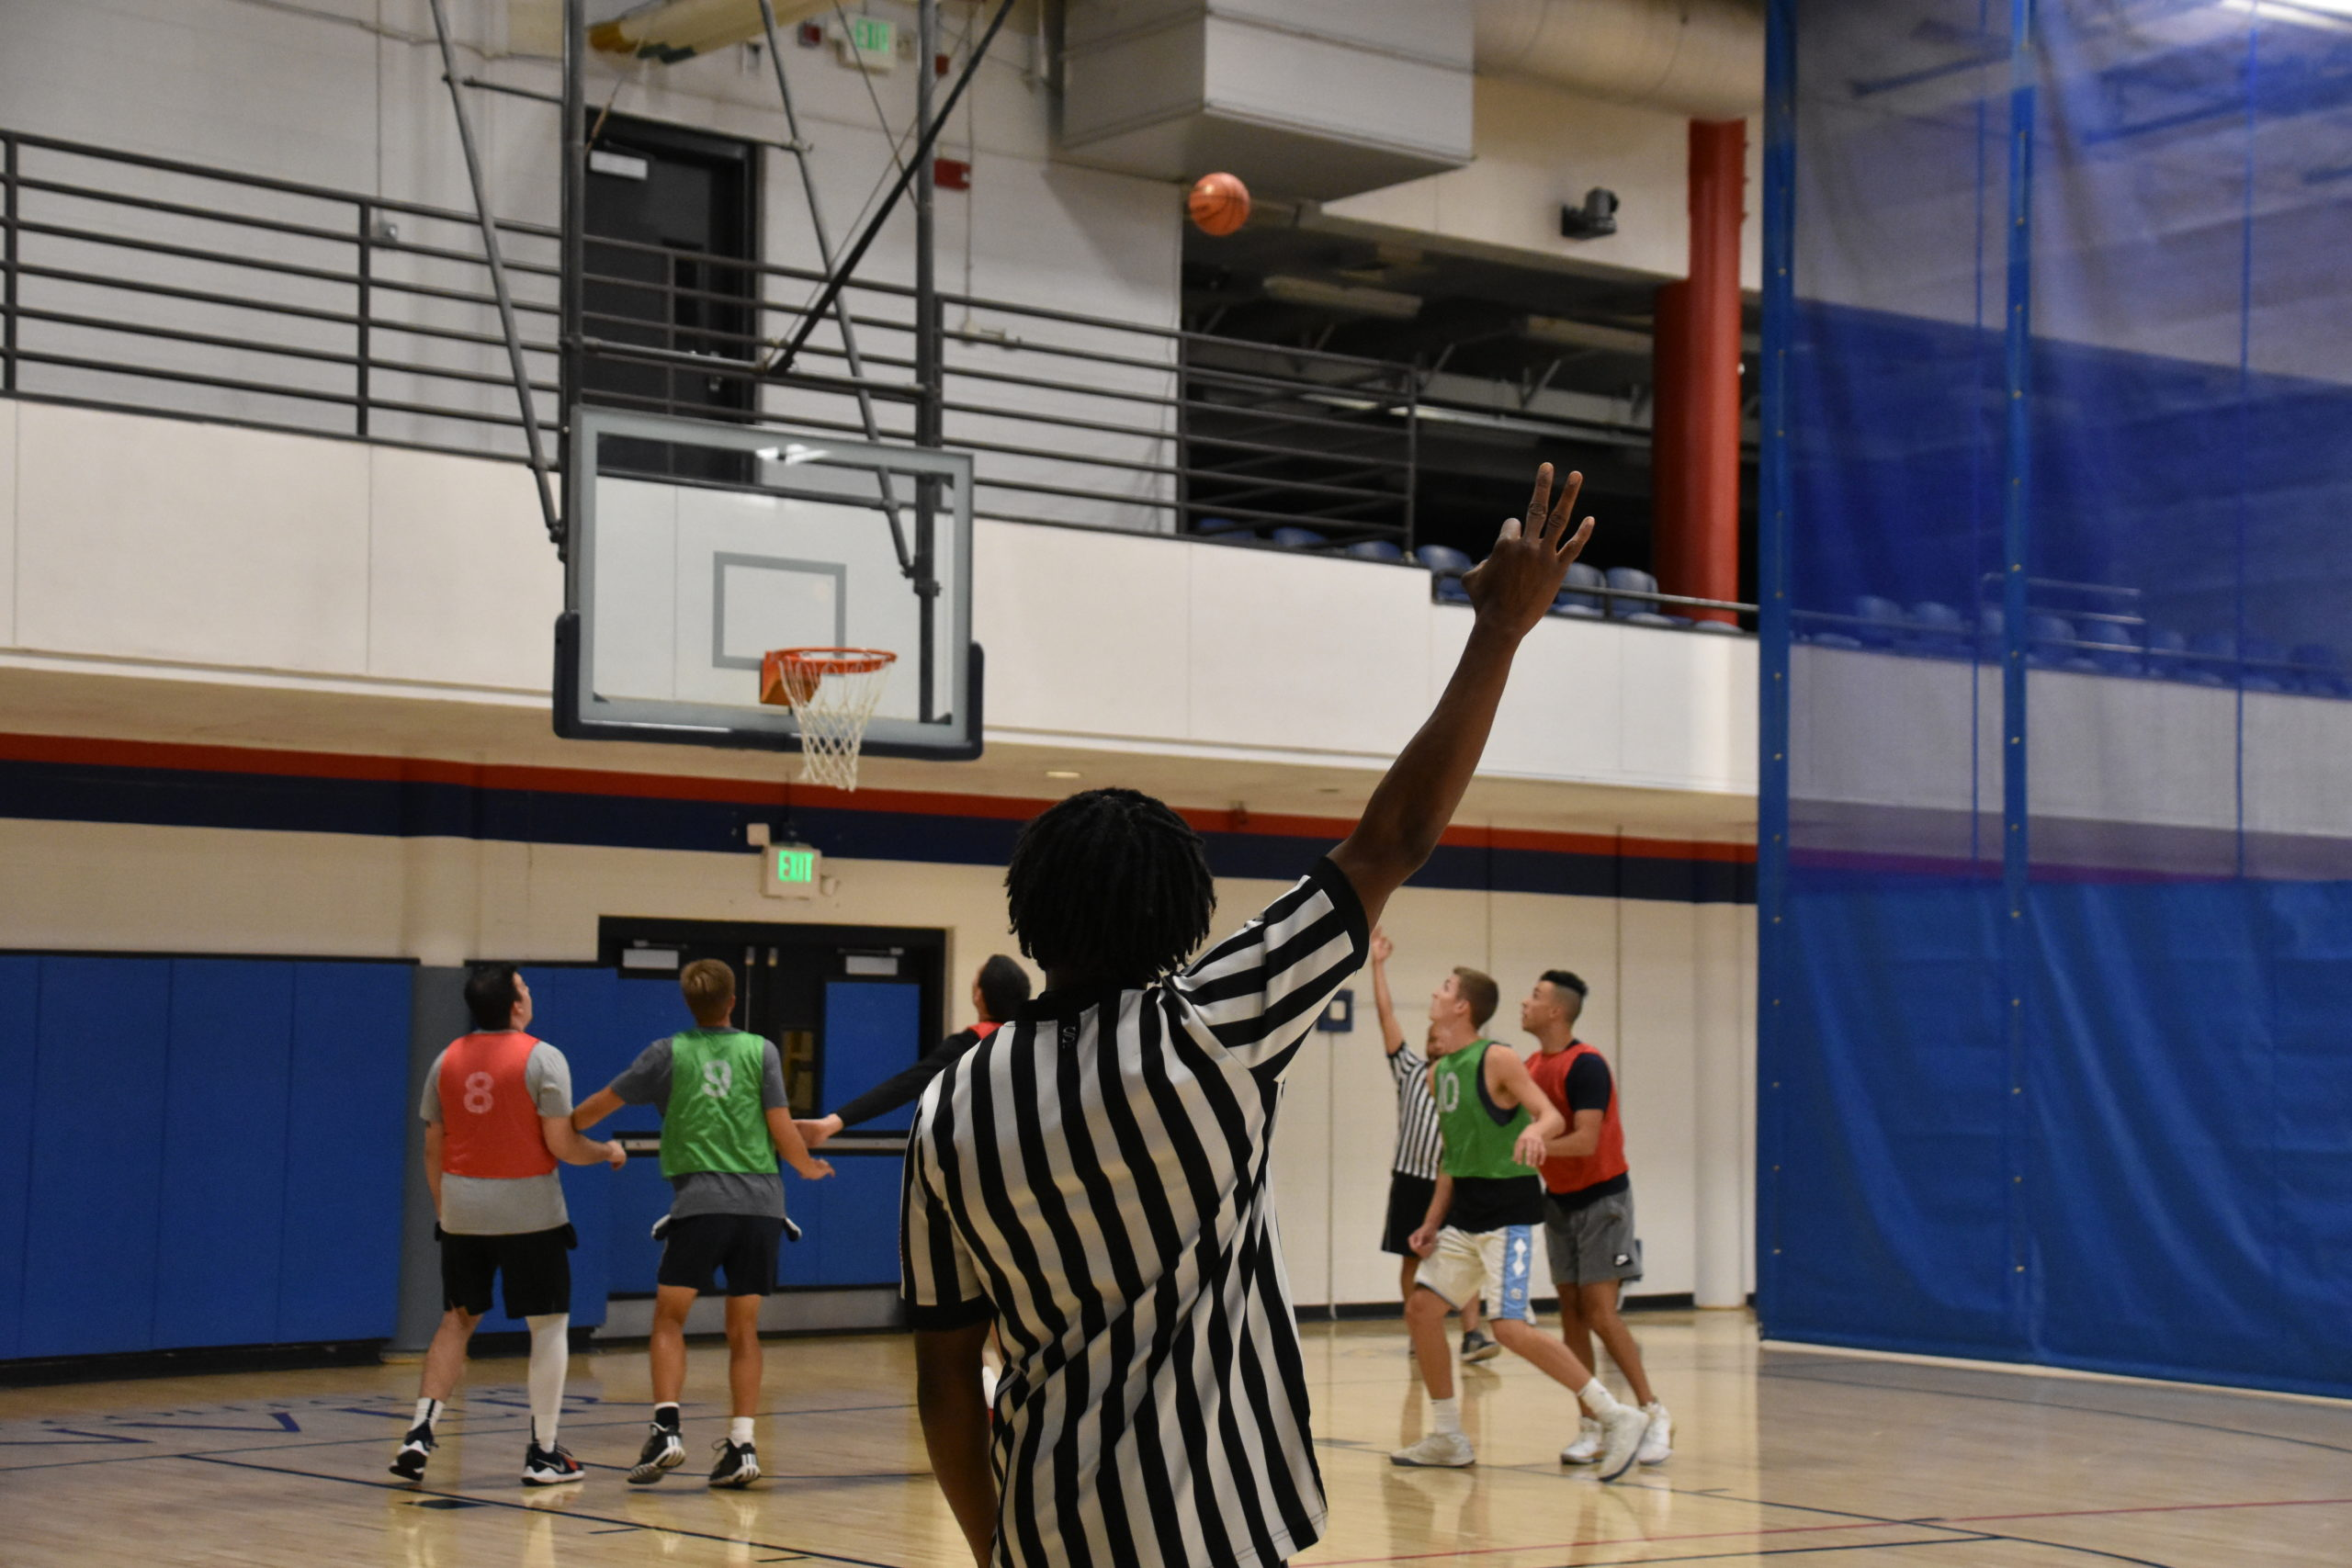 Intramural basketball official showing a 3 point attempt